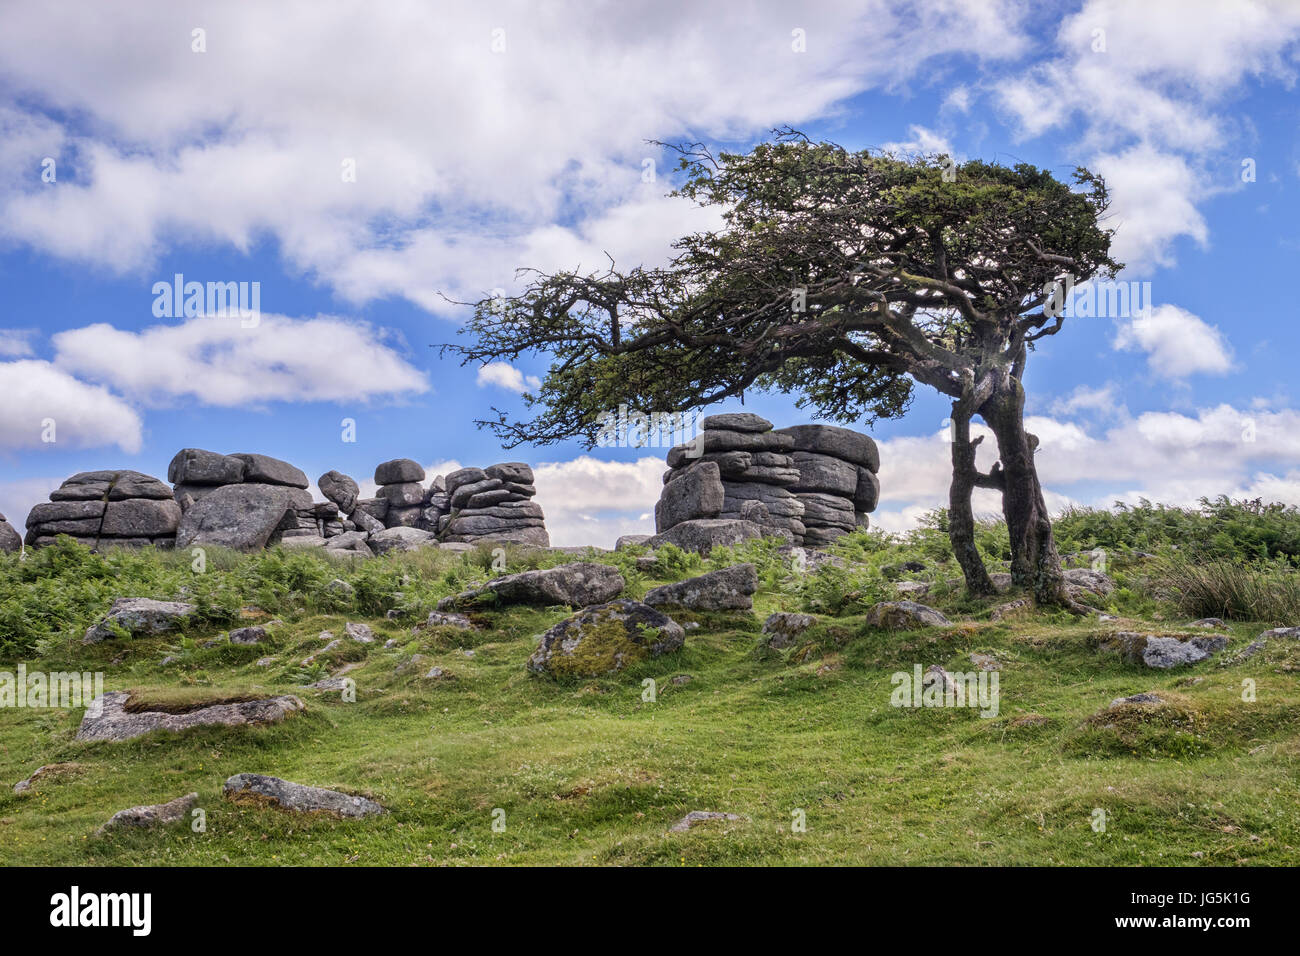 Winswept hawthorn tree at Combestone Tor, Dartmoor, Devon, UK. - Stock Image